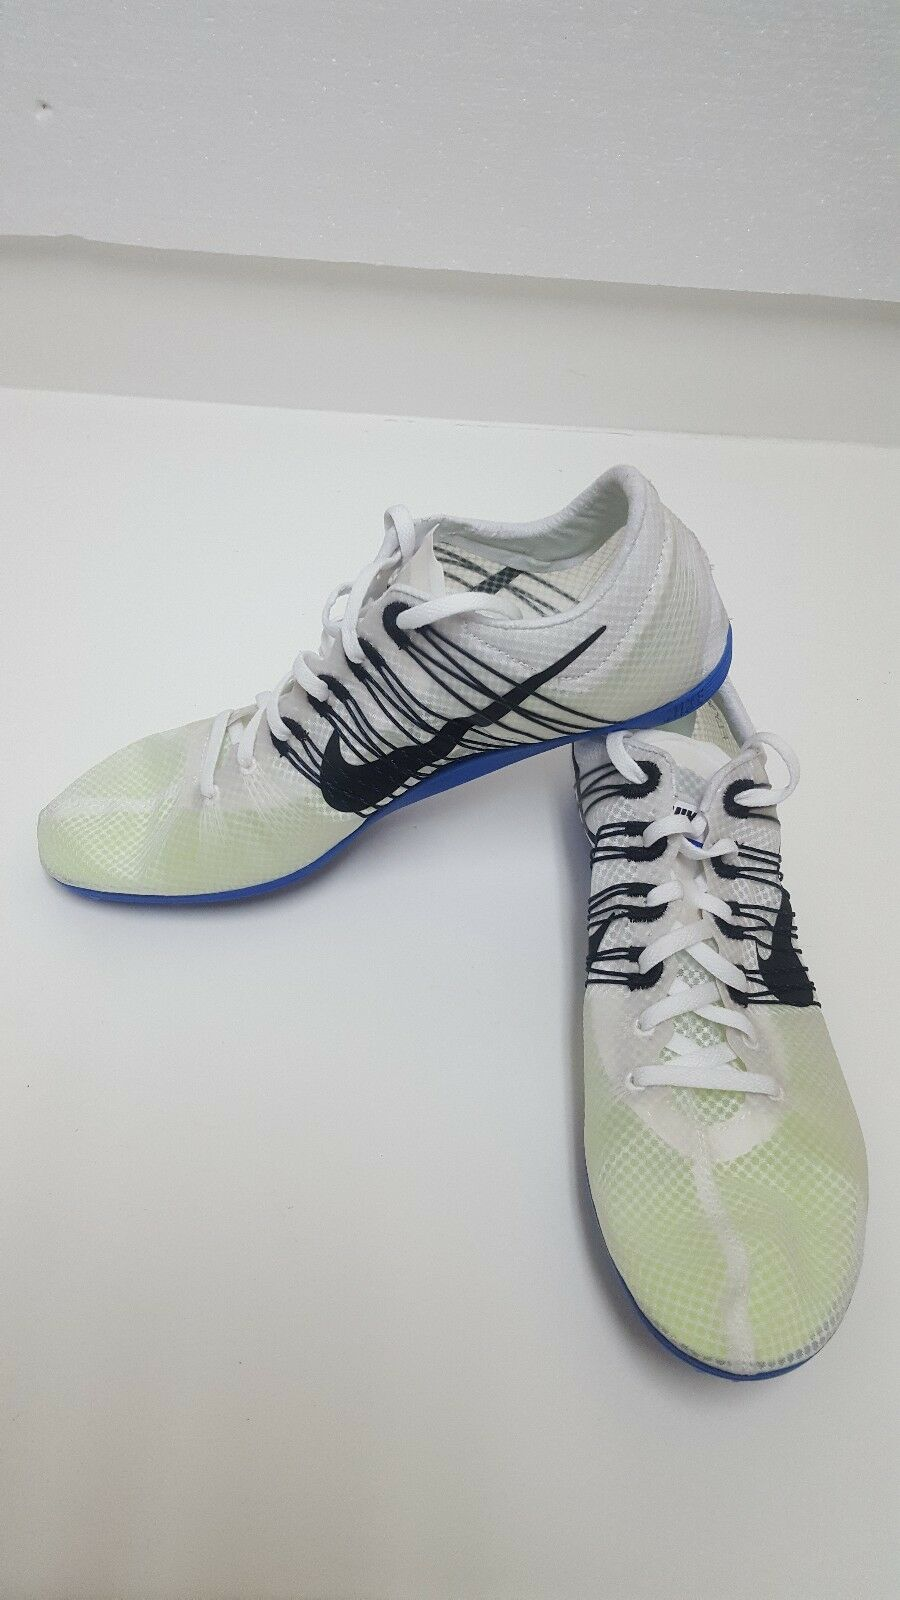 9bf633b7a Mens Nike Zm Victry Elite Spikes Running Running Running Shoes Wht Blue  Black 526627-100 SZ12.5 da1369